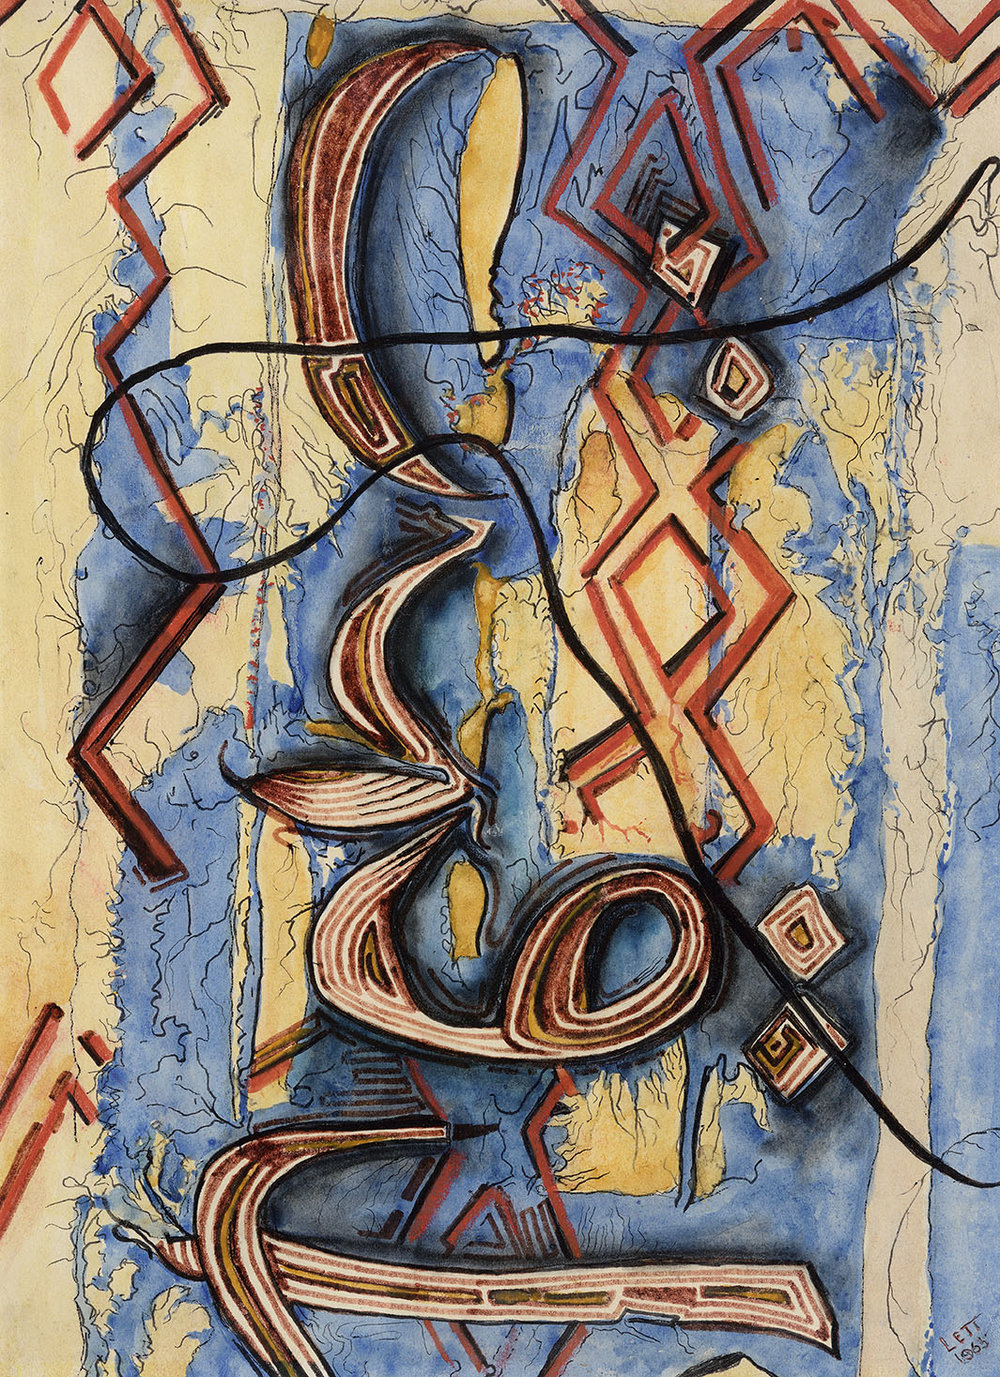 Arthur Lett-Haines (1894-1978)    Pure Abstraction, Arabesque No. 1,  1965, Pen and watercolour on paper, 13 x 9 ½ in, Signed and dated  [CAS 40] Donated in 1981